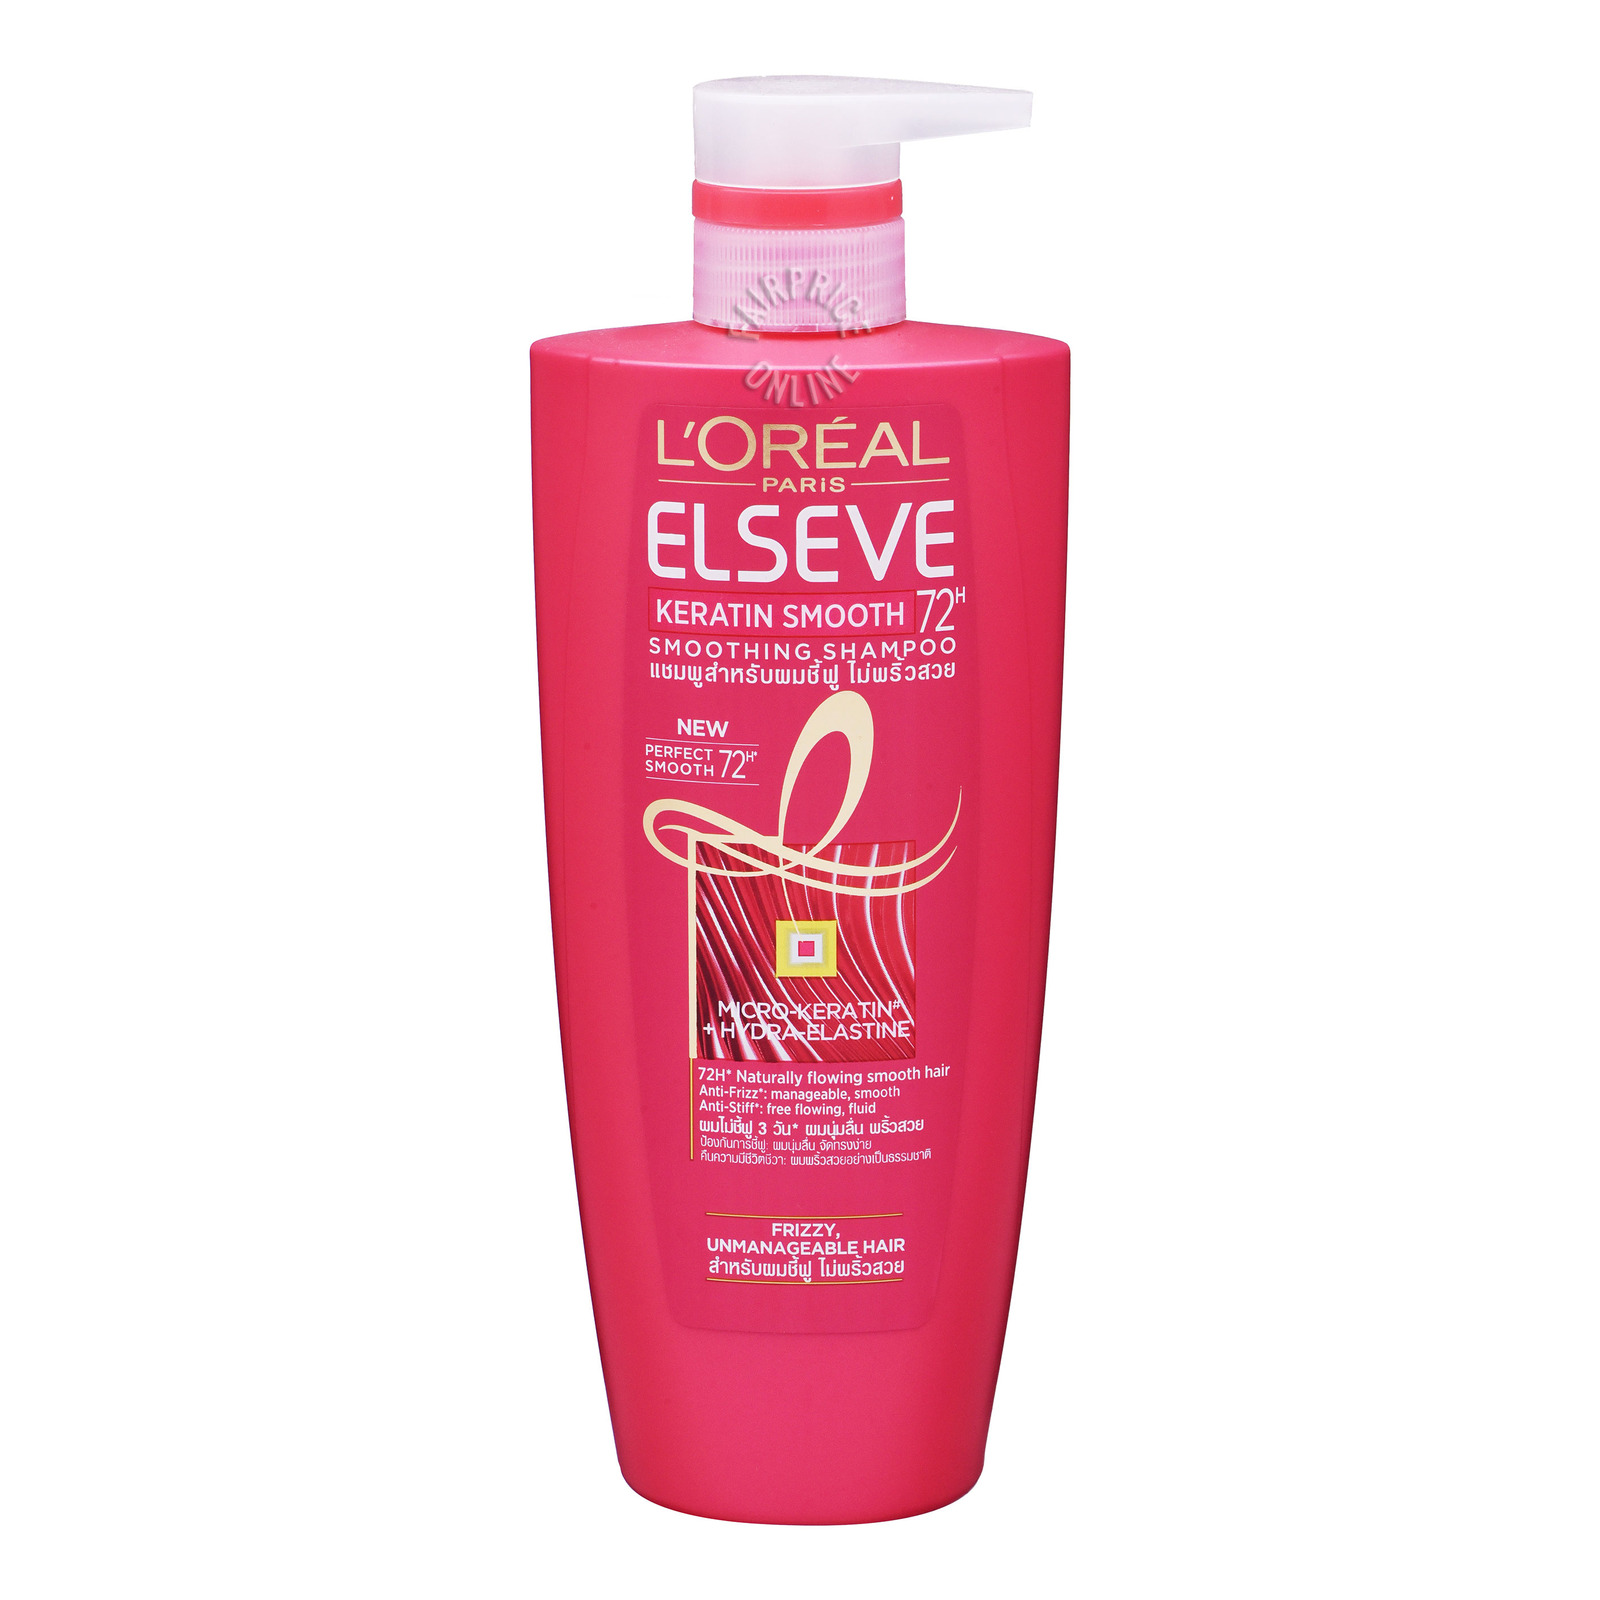 L'Oreal Paris Shampoo - Keratin Smooth (Perfecting)